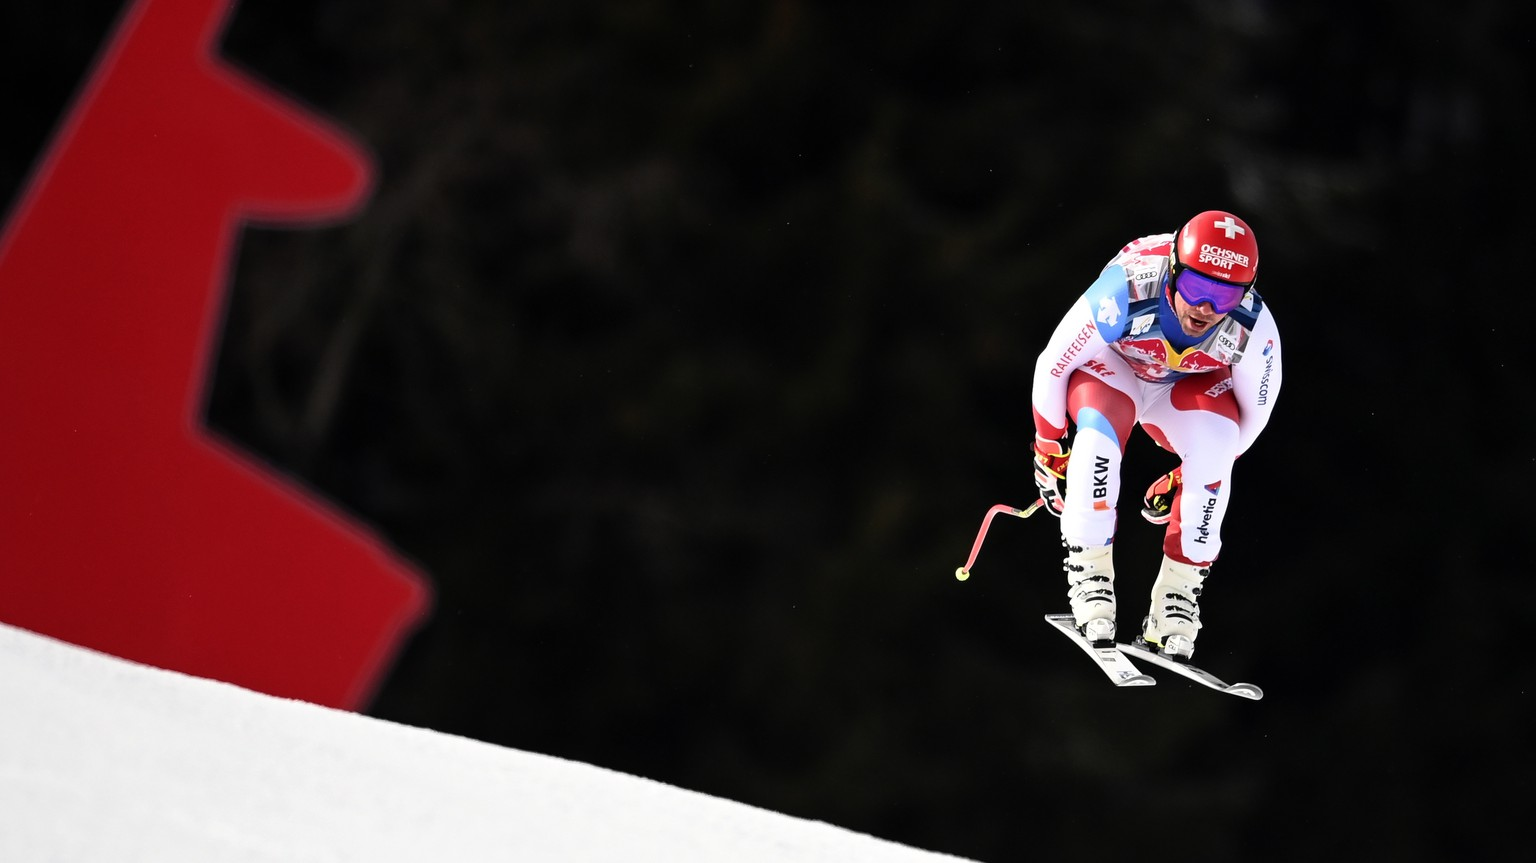 epa08961674 Beat Feuz of Switzerland speeds down the slope during the Men's Downhill race at the FIS Alpine Skiing World Cup in Kitzbuehel, Austria, 24 January 2021.  EPA/CHRISTIAN BRUNA